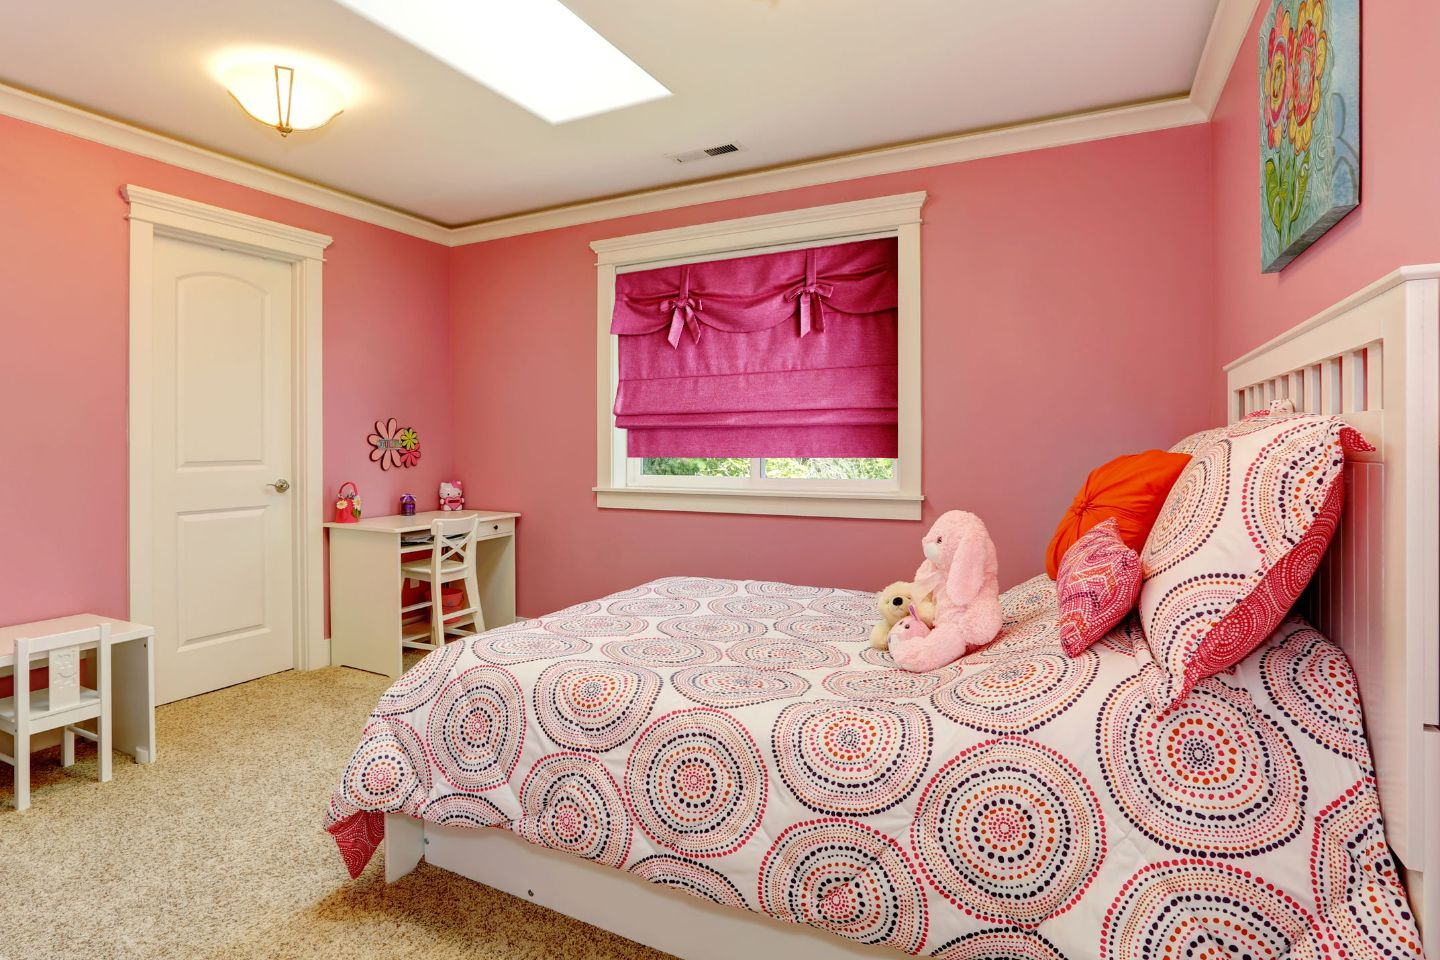 This Gorgeous Flat Roman Shade Has Beautiful Bow Details And A Valance Making It As Pret Bedroom Paint Colors Master Pink Bedroom For Girls Bedroom Decor Cozy Colourful tiny girls bedroom